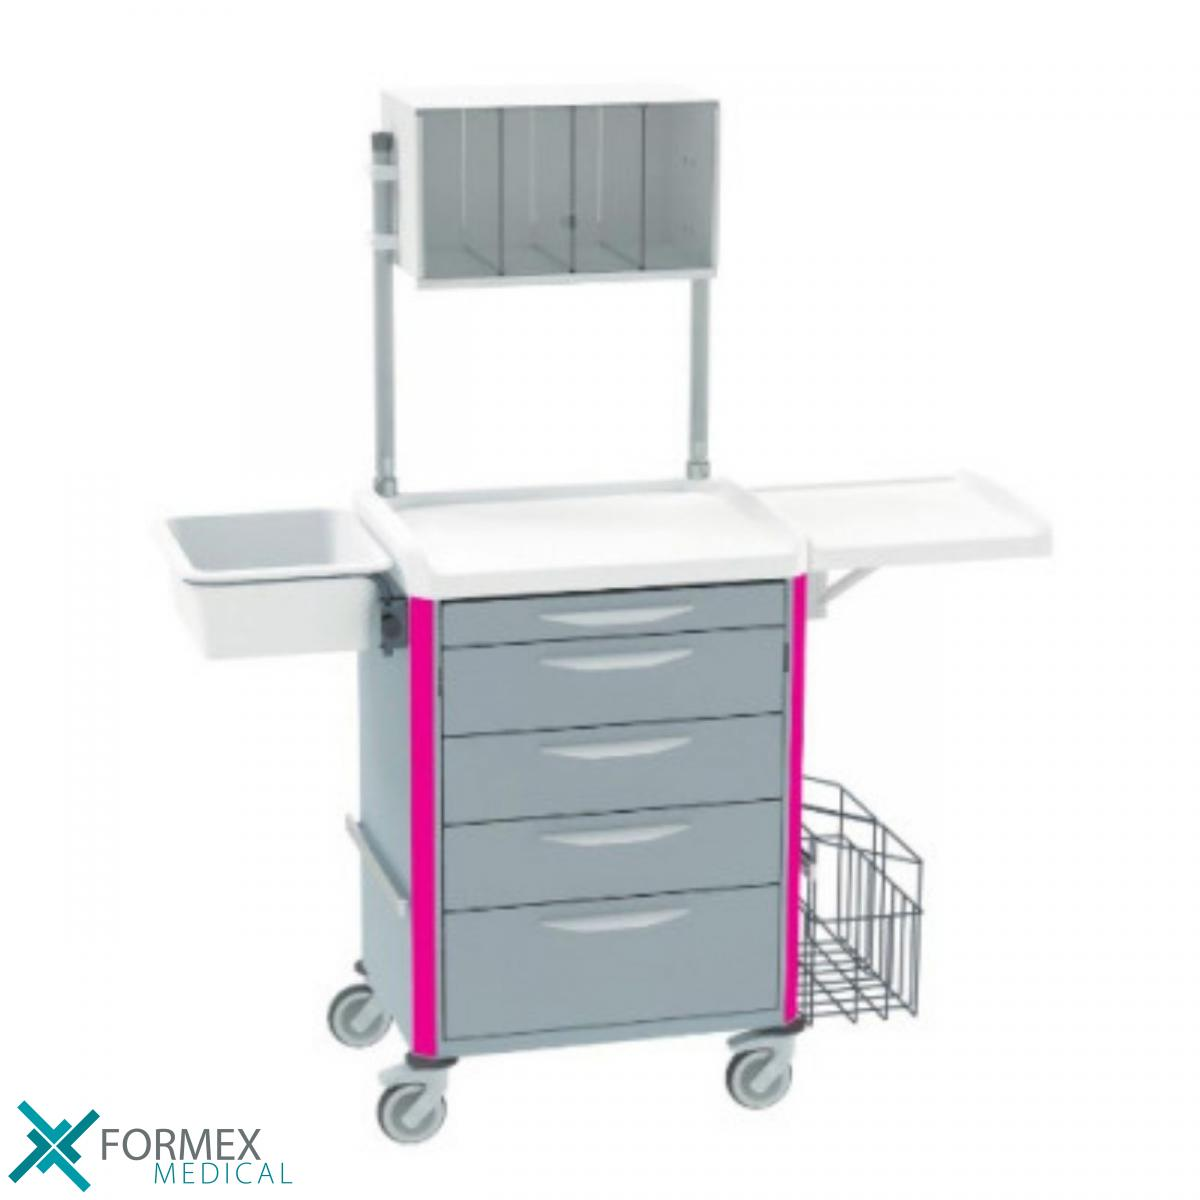 medical carts on wheels, medical carts, carts on wheels, medische karren, medicijnwagen, medicatiekar, medicijnkarren, ziekenhuis karren, ziekenhuis trolley, computer on wheels, laptop carts, mobiele werkplek